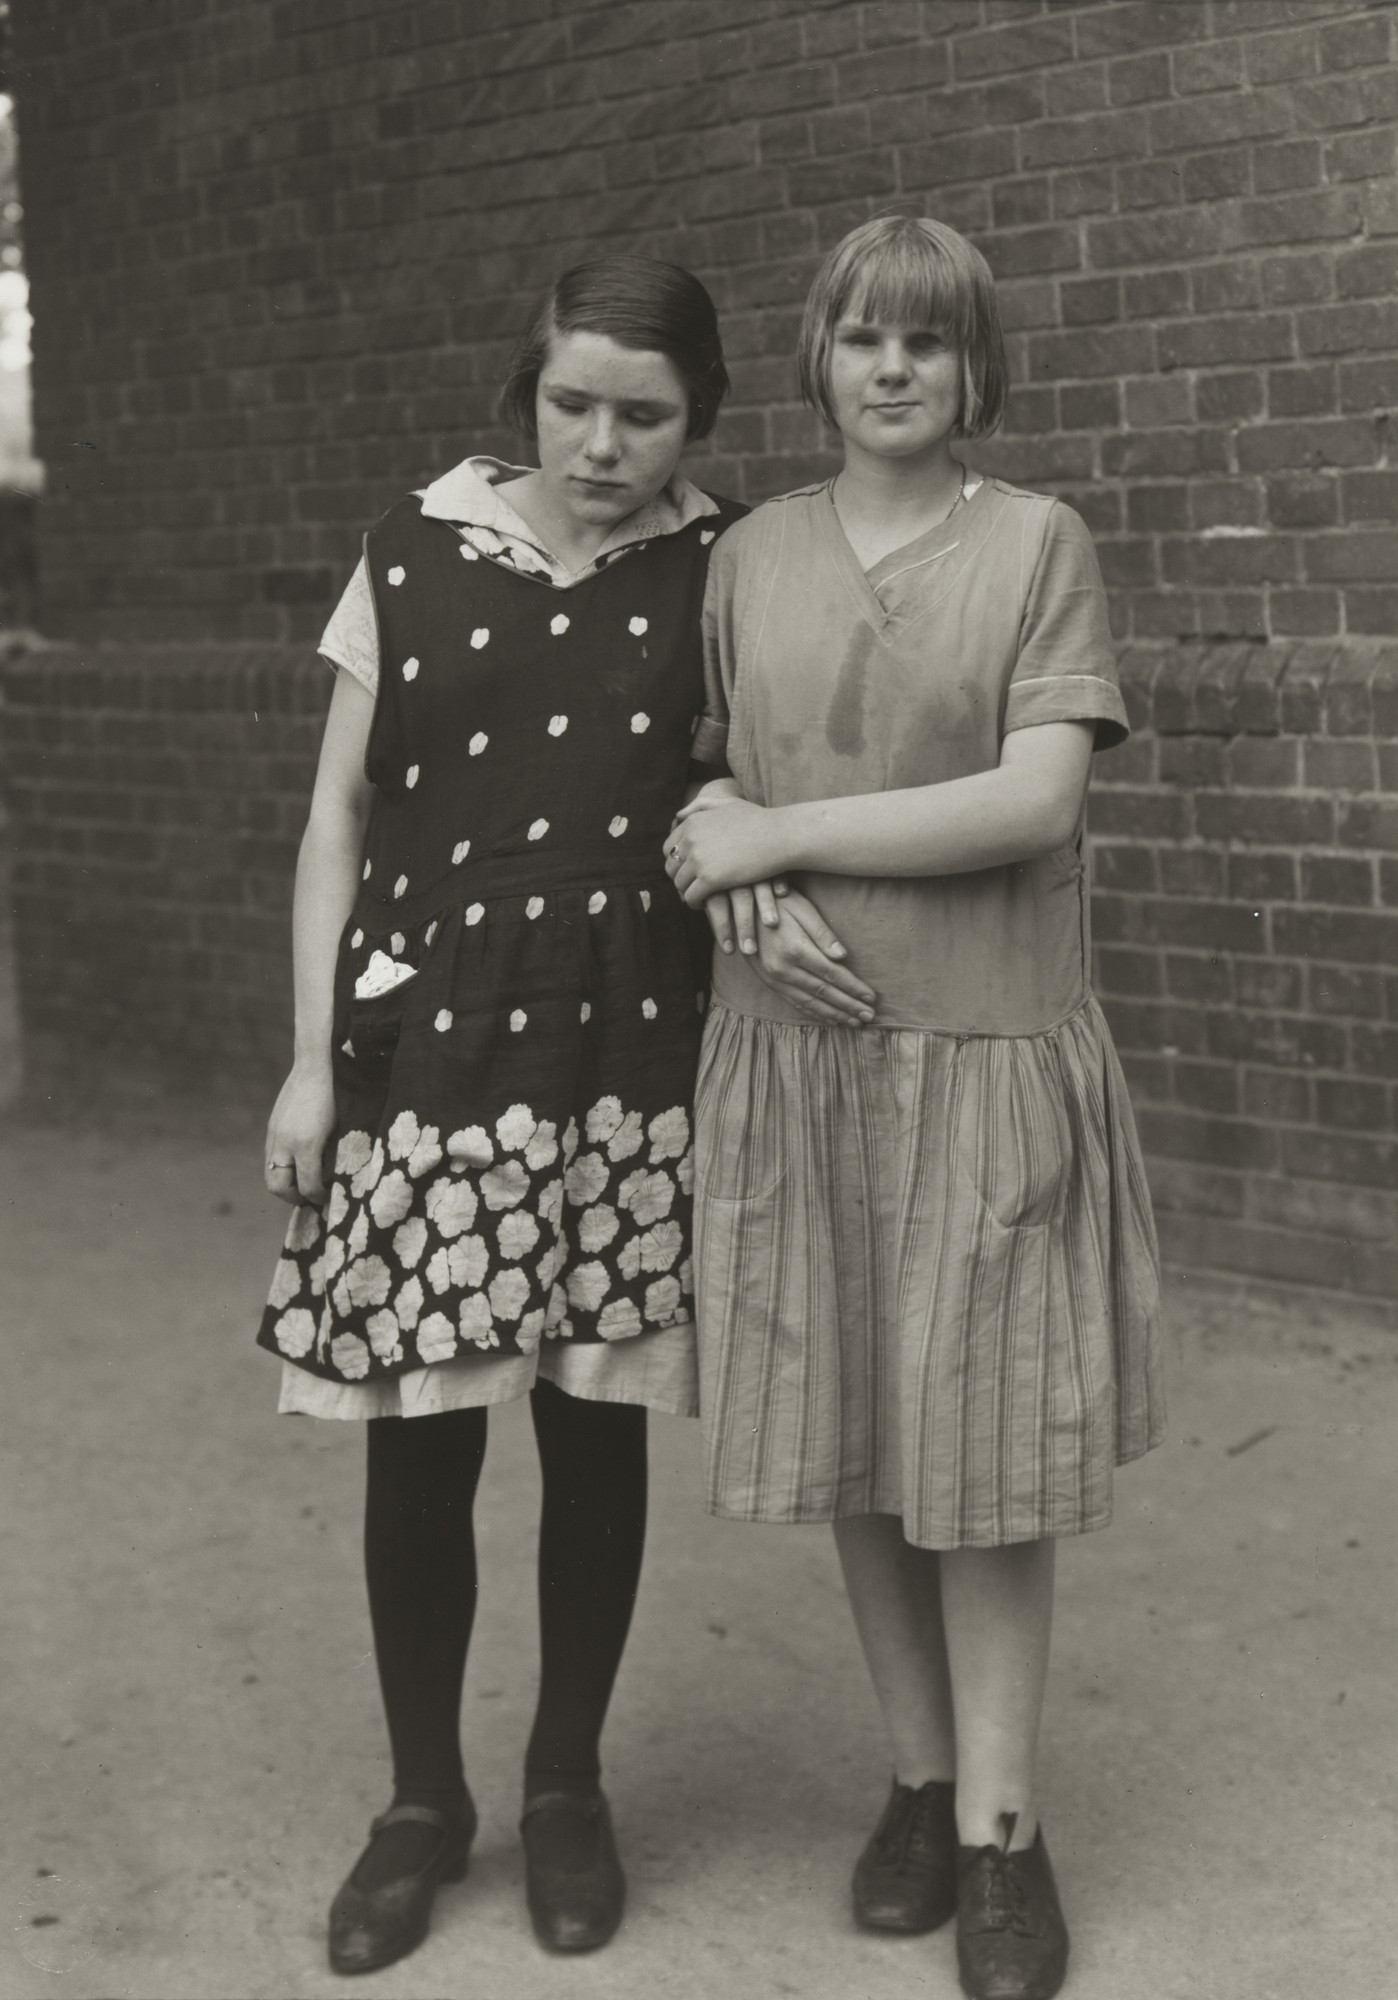 August Sander. Blind Girls. c. 1930